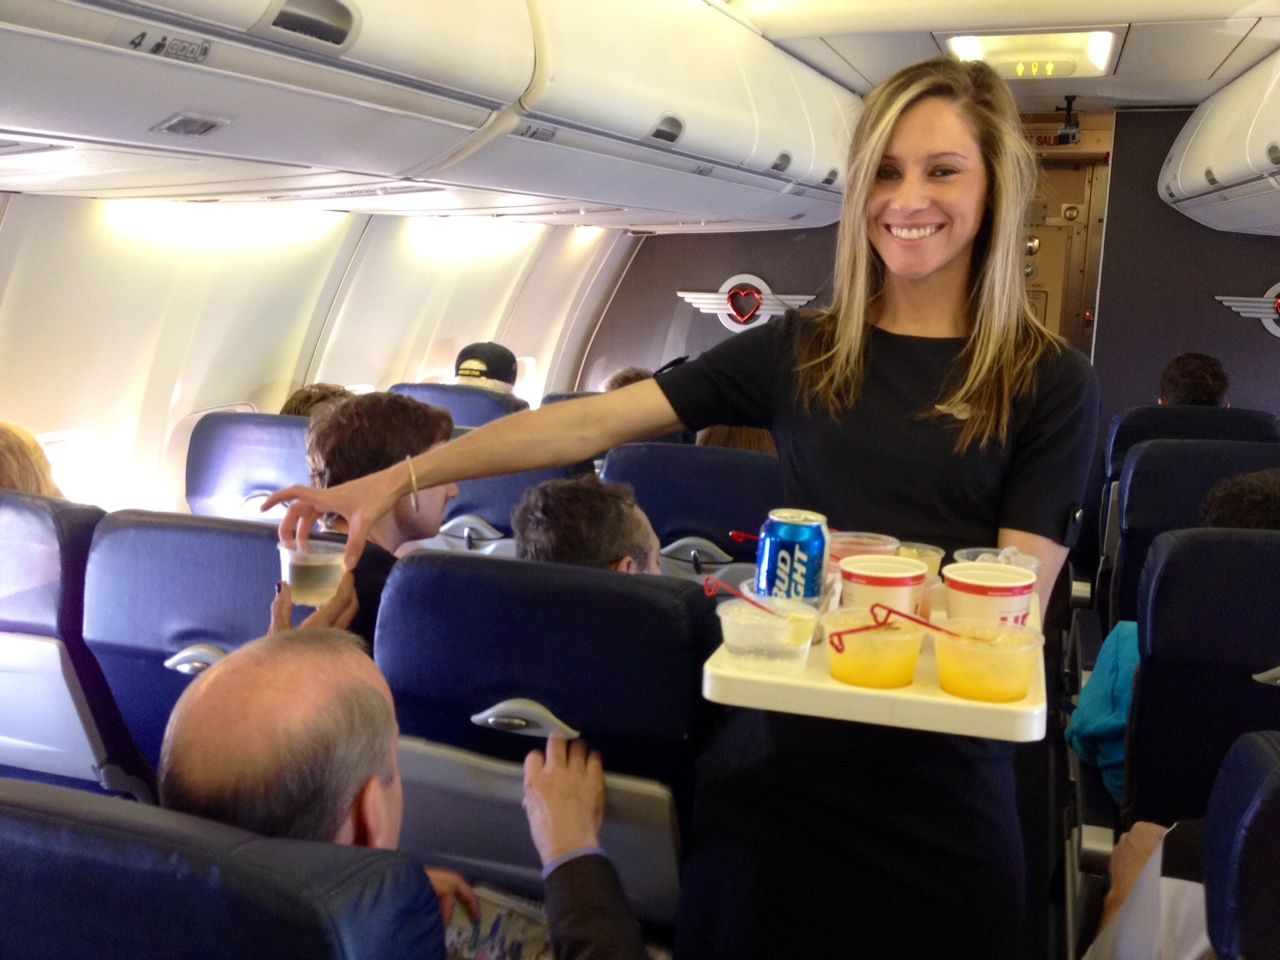 Nothing says #NonstopLove more than drinks on the house on Southwest Airlines as we #SPREADTHELUCK